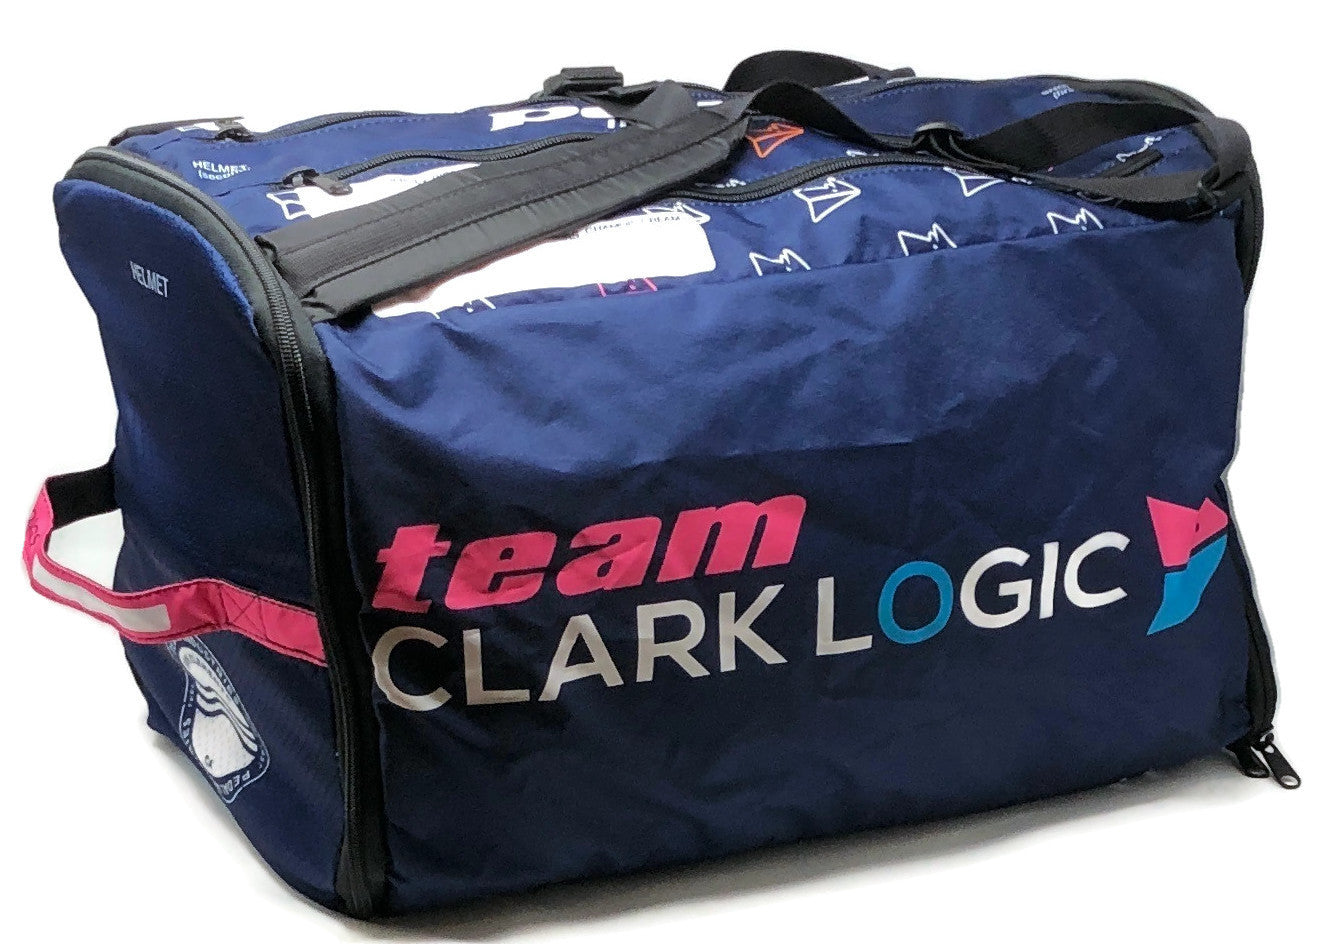 Team Clark Logic '19 RACEDAY BAG - ships in about 3 weeks